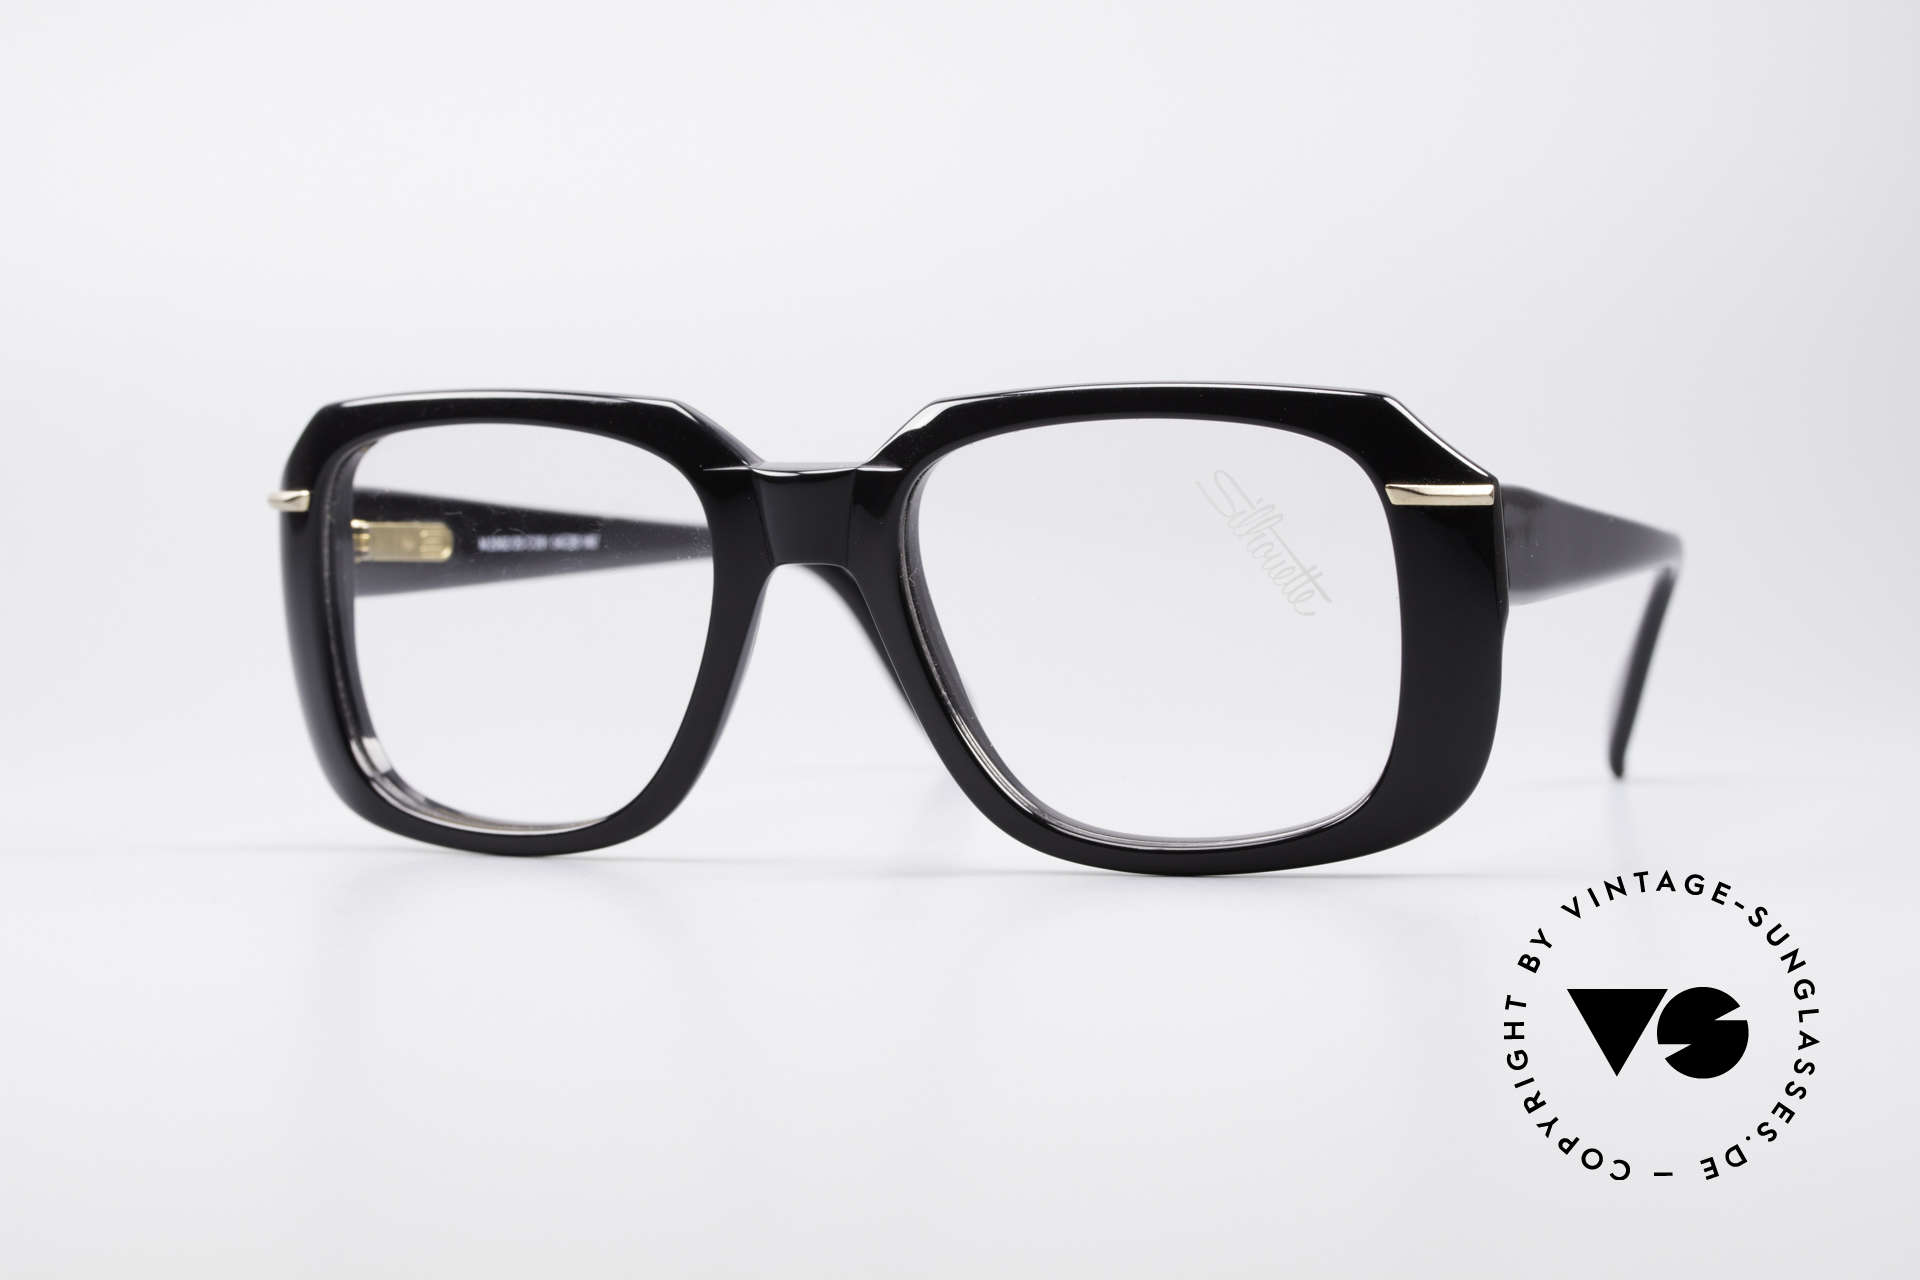 Silhouette M2062 Old School Eyeglasses, massive 'Old School' Silhouette vintage glasses, Made for Men